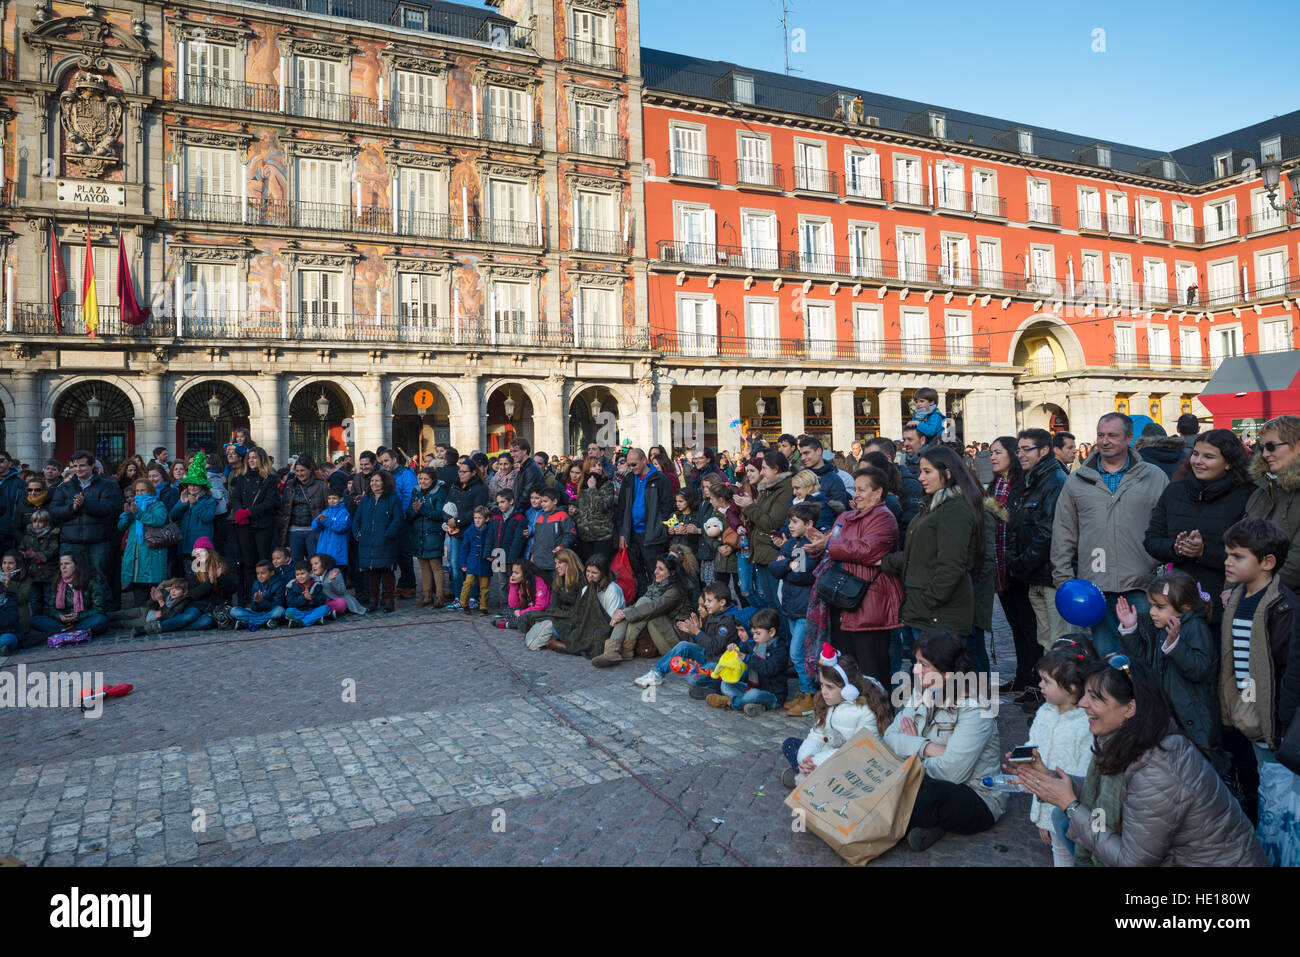 Crowd gather to see a street entertainer at Plaza Mayor, Madrid, Spain. - Stock Image